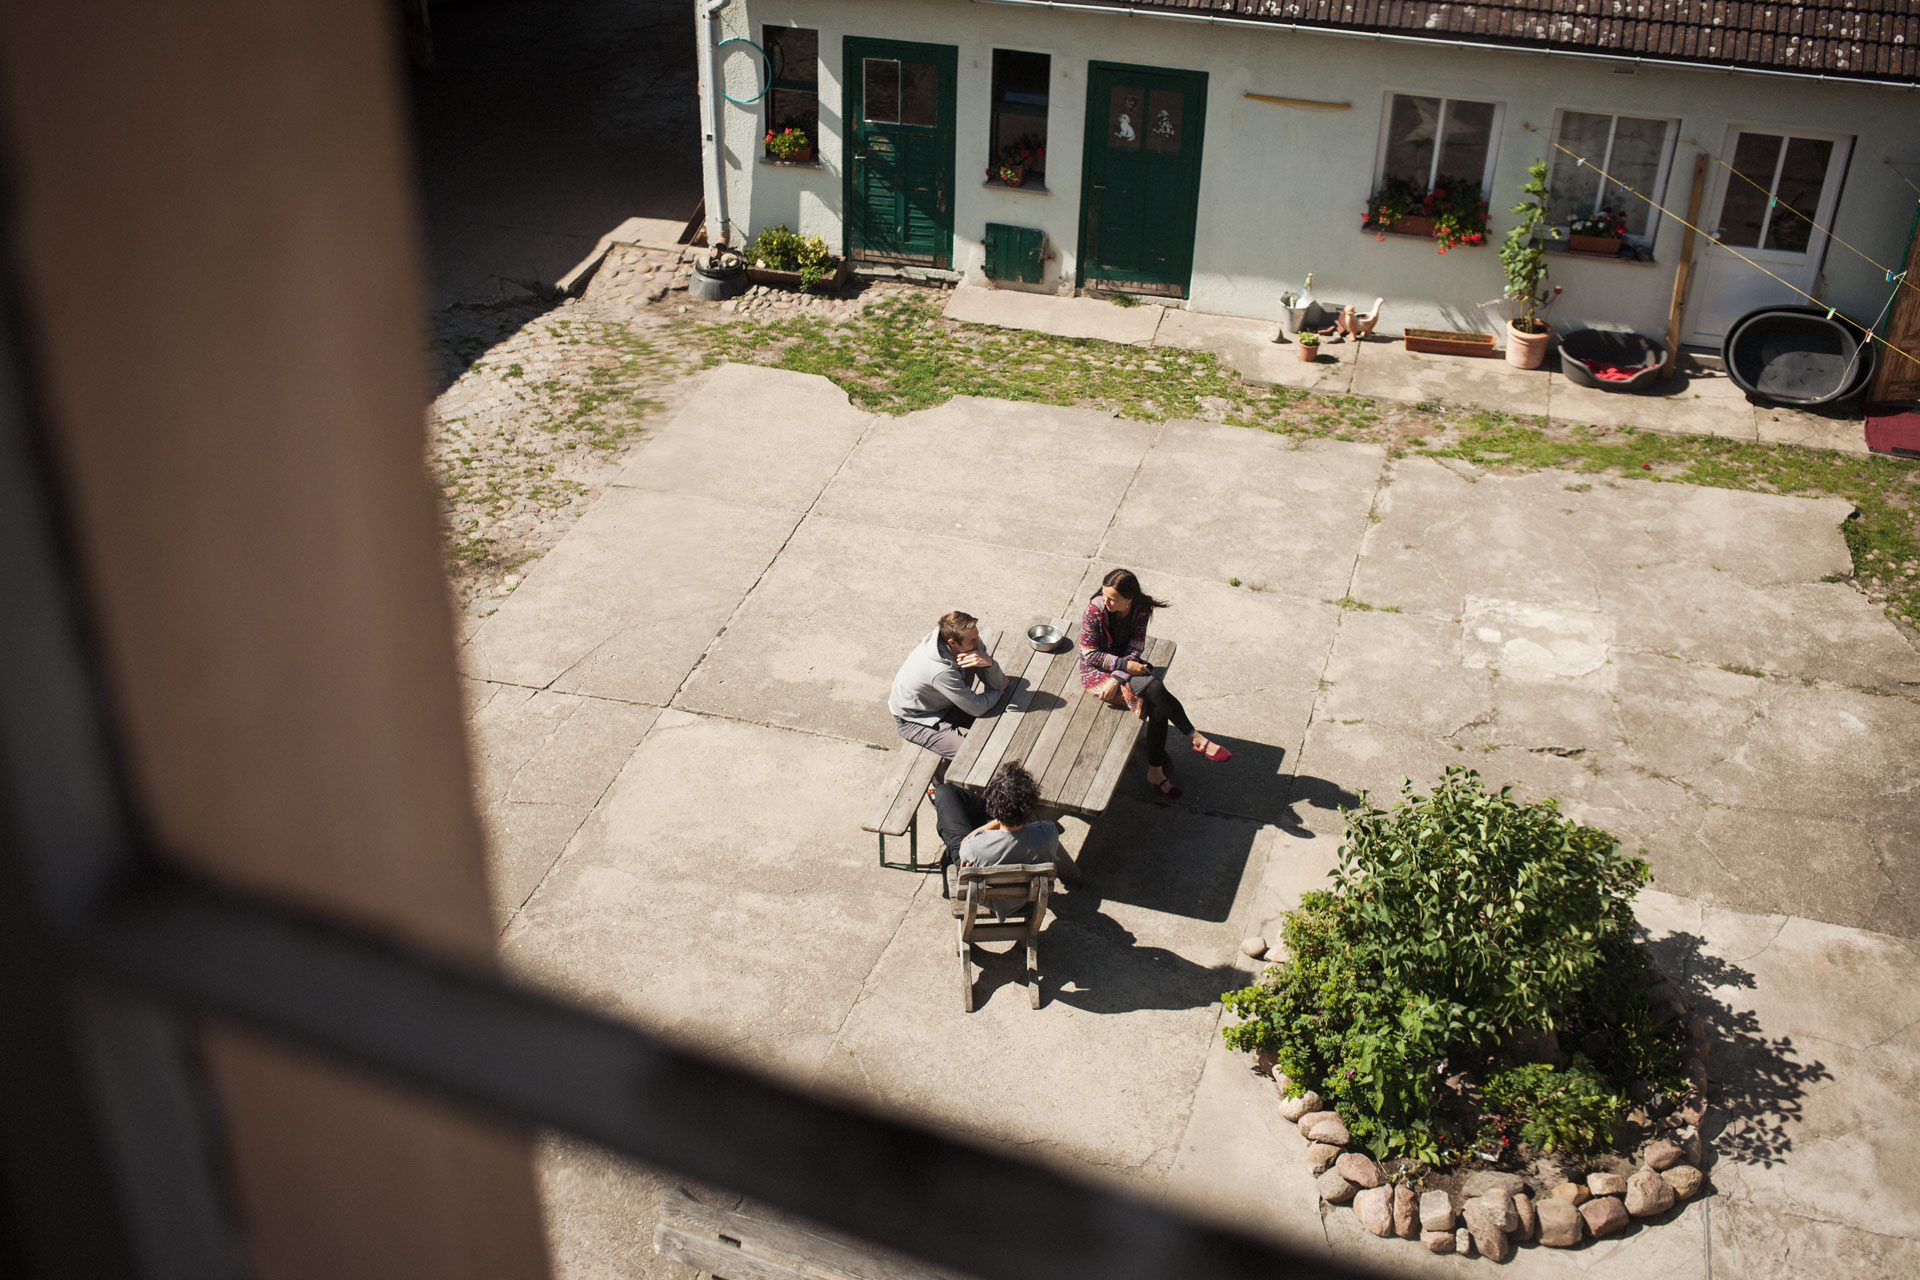 timo-stammberger-photography-fotografie-sunny-court-yard-communication-chatting